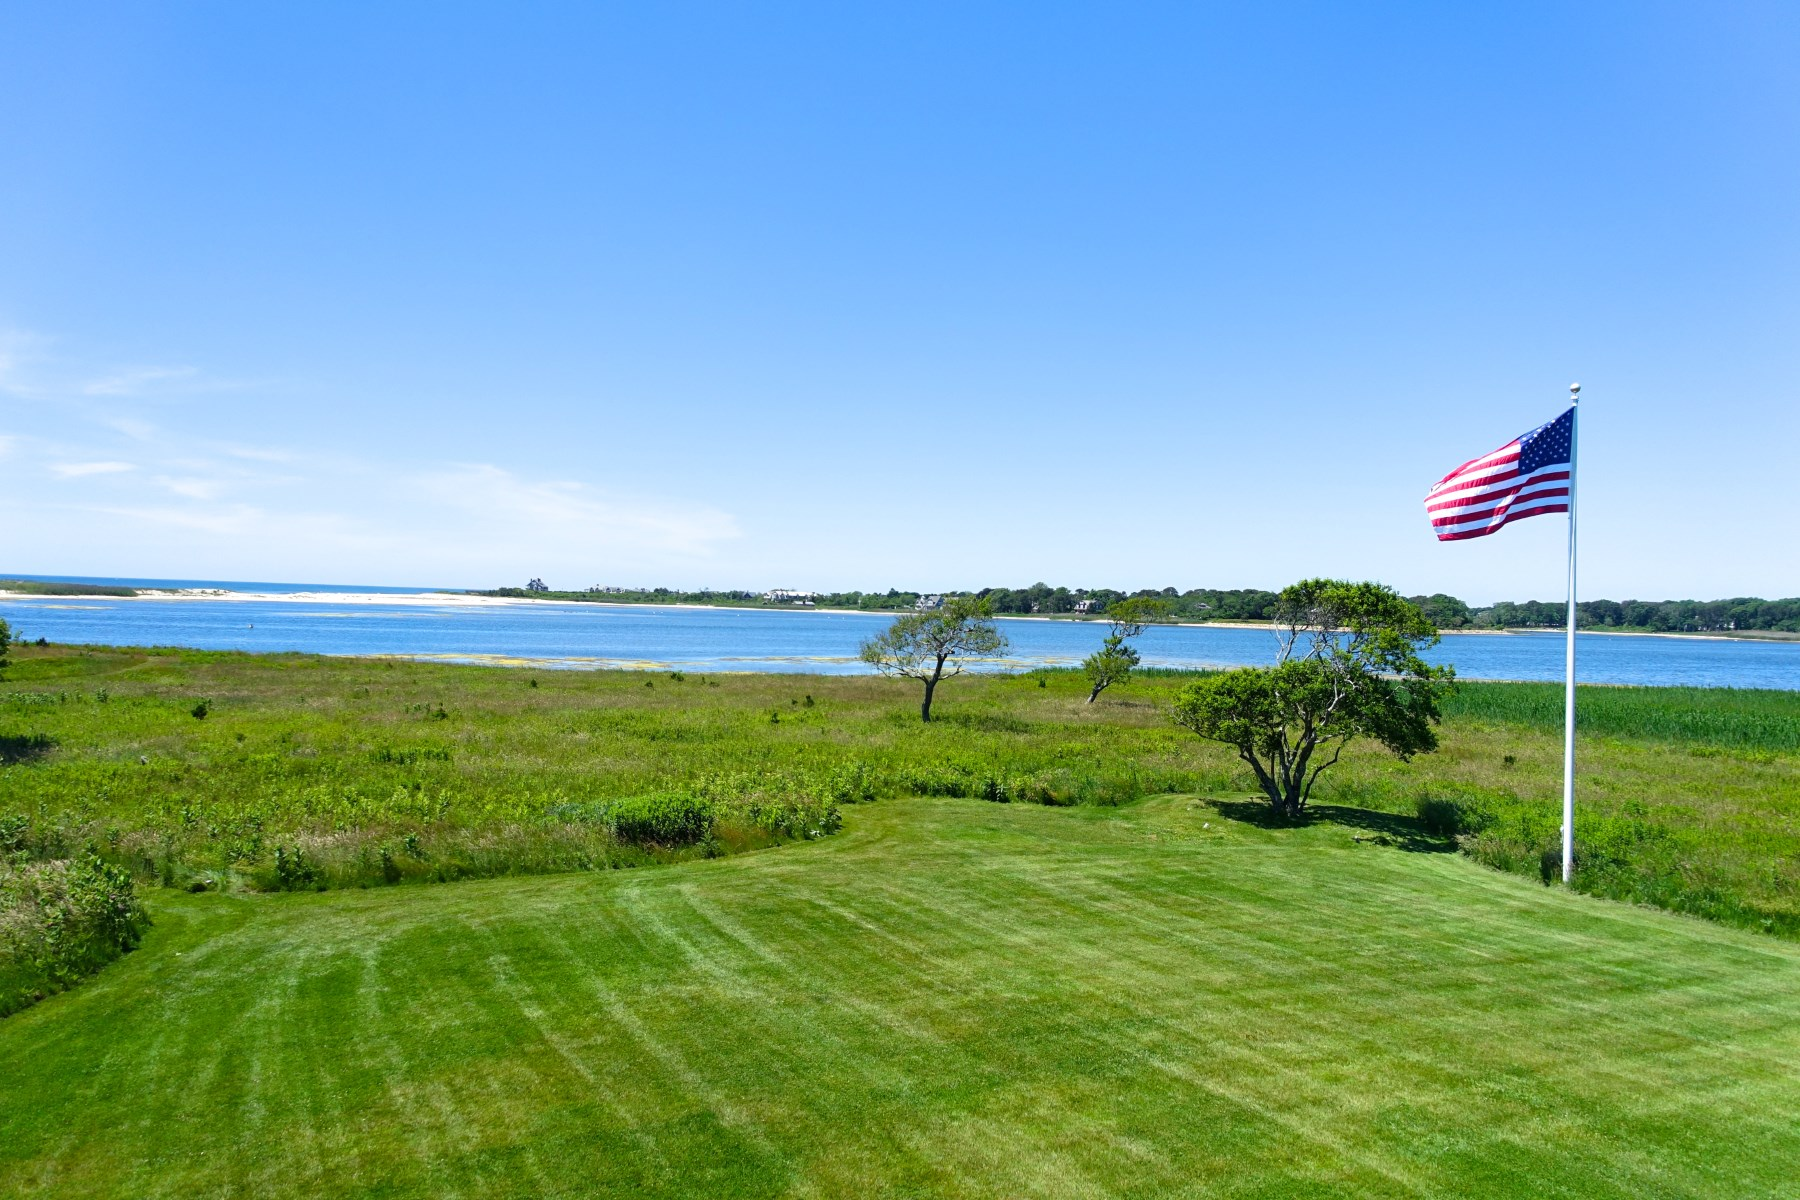 独户住宅 为 销售 在 7.1 Acres On Prestigious Pond 19 & 23 Chauncey Close East Hampton Village, 东汉普顿, 纽约州, 11937 美国